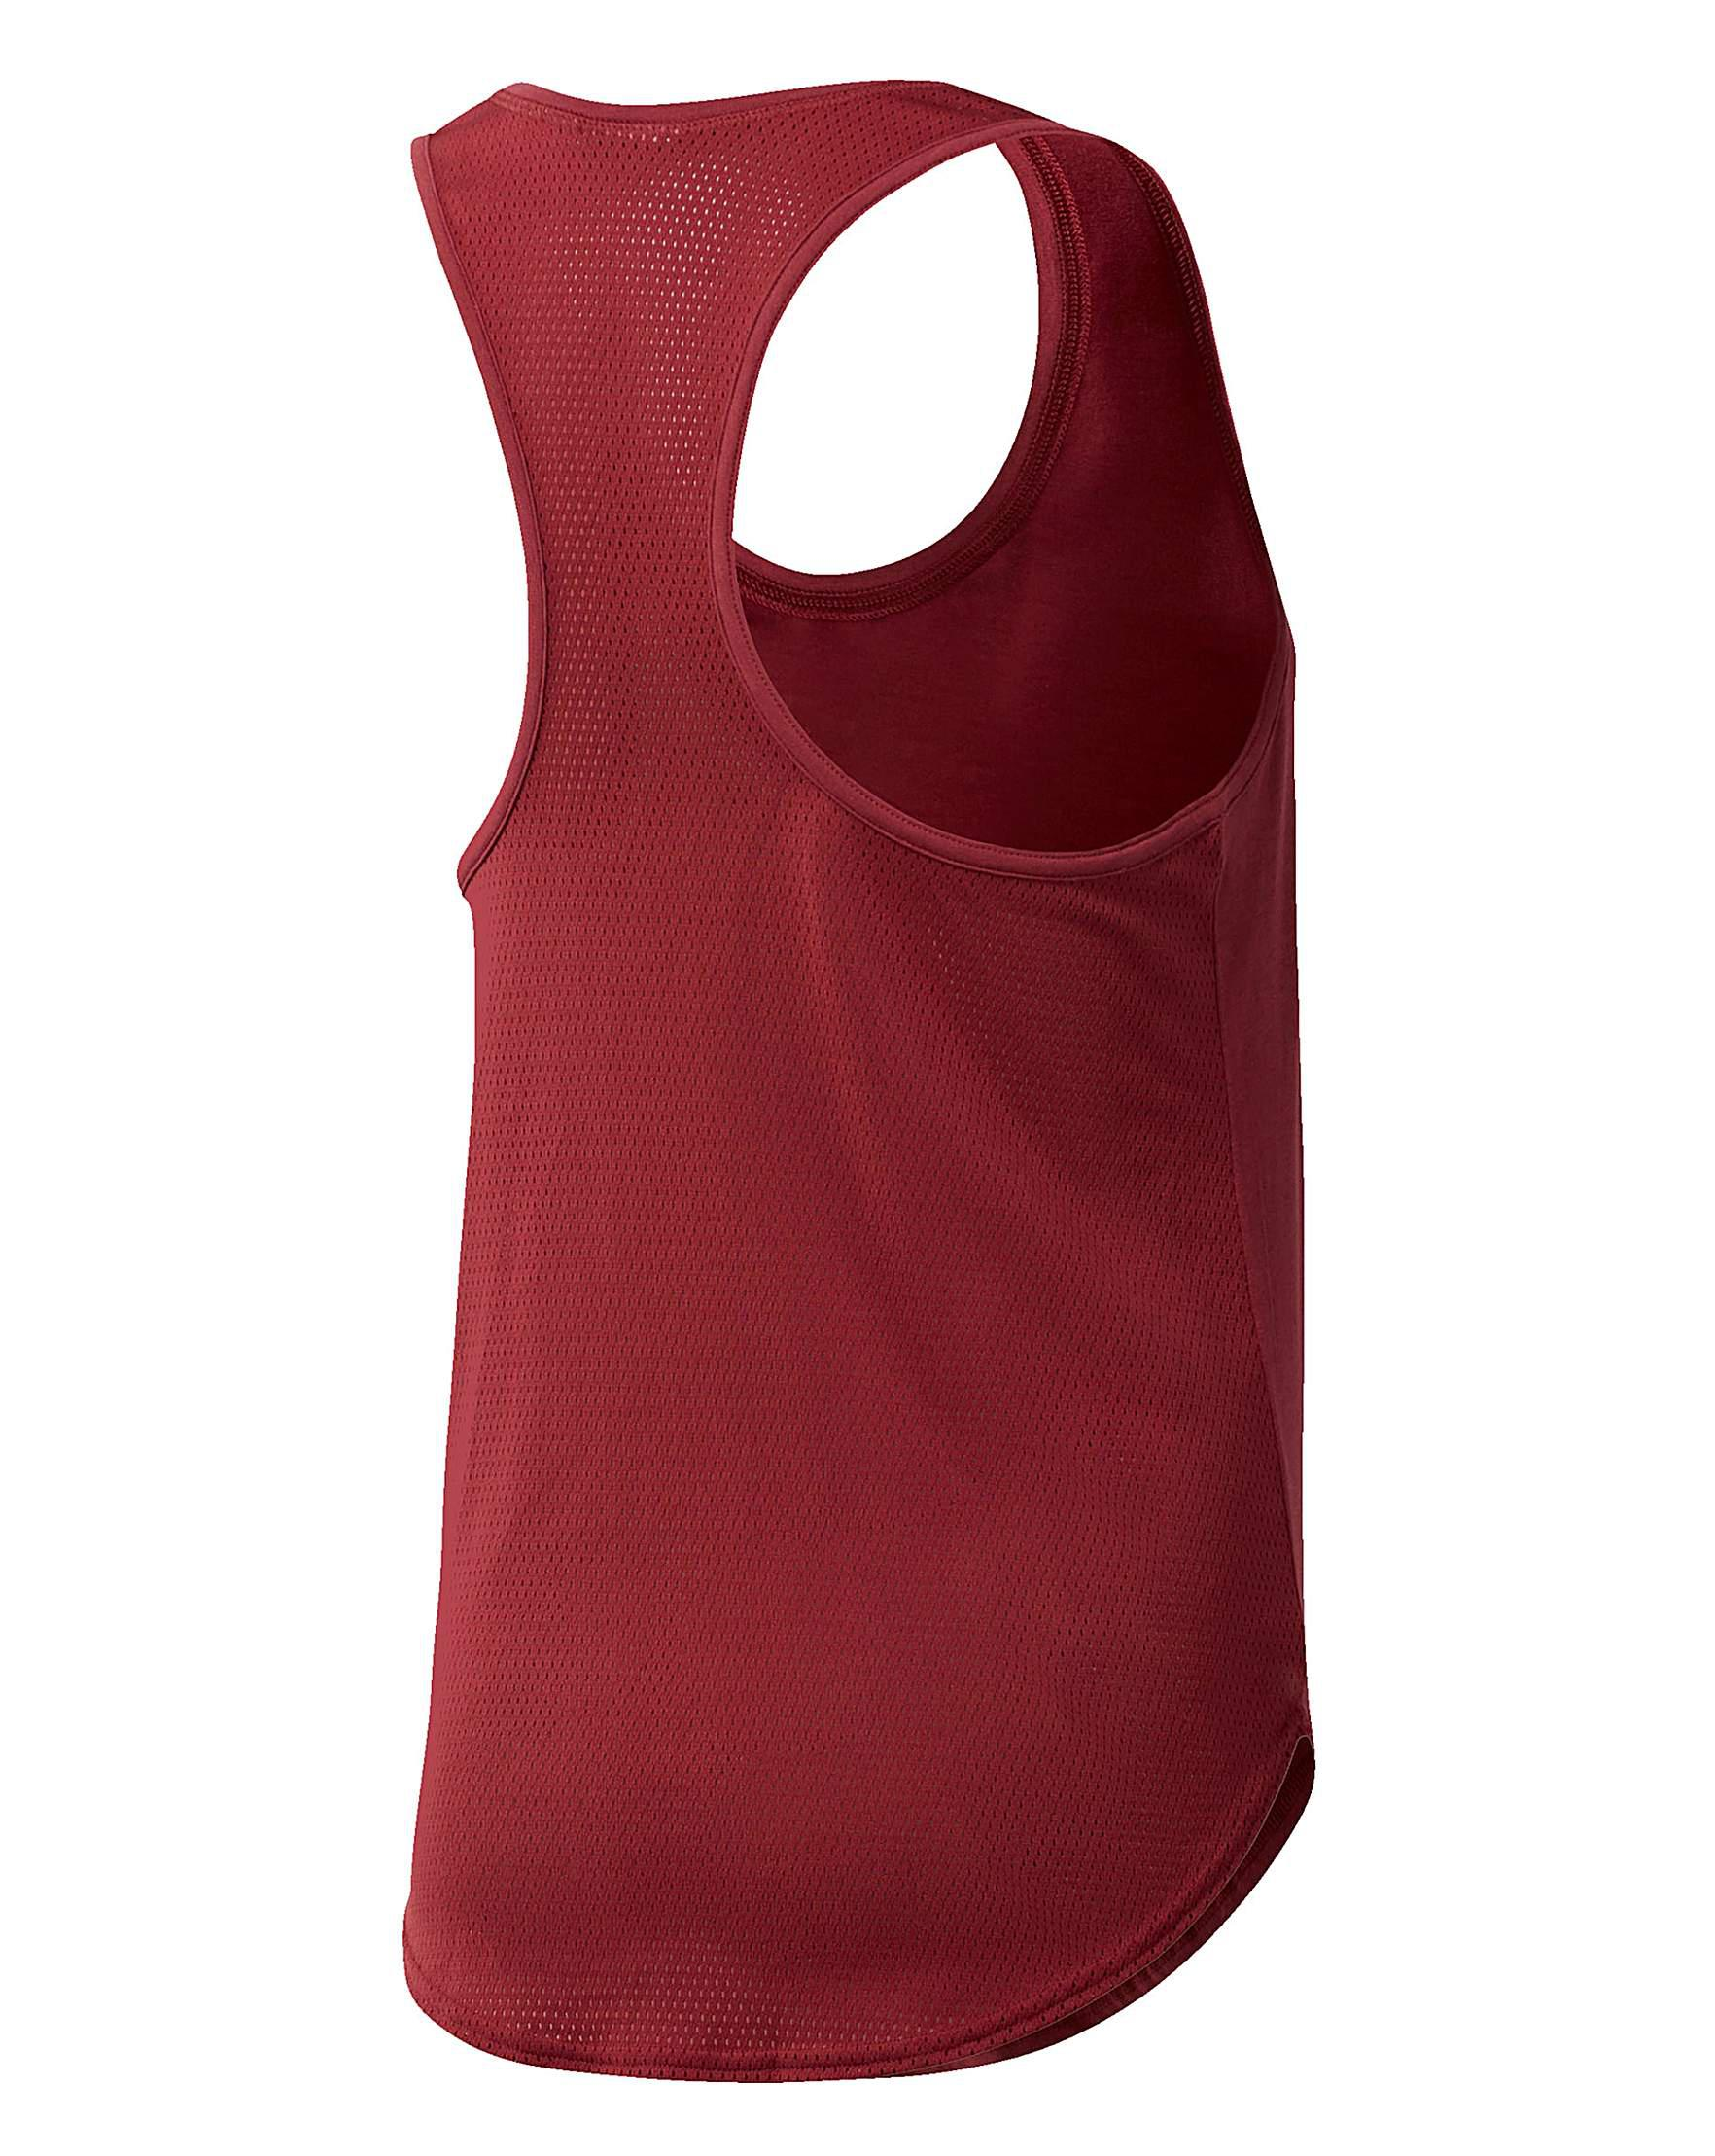 6425bce80231c Reebok Workout Mesh Back Tank Top in Red - Lyst